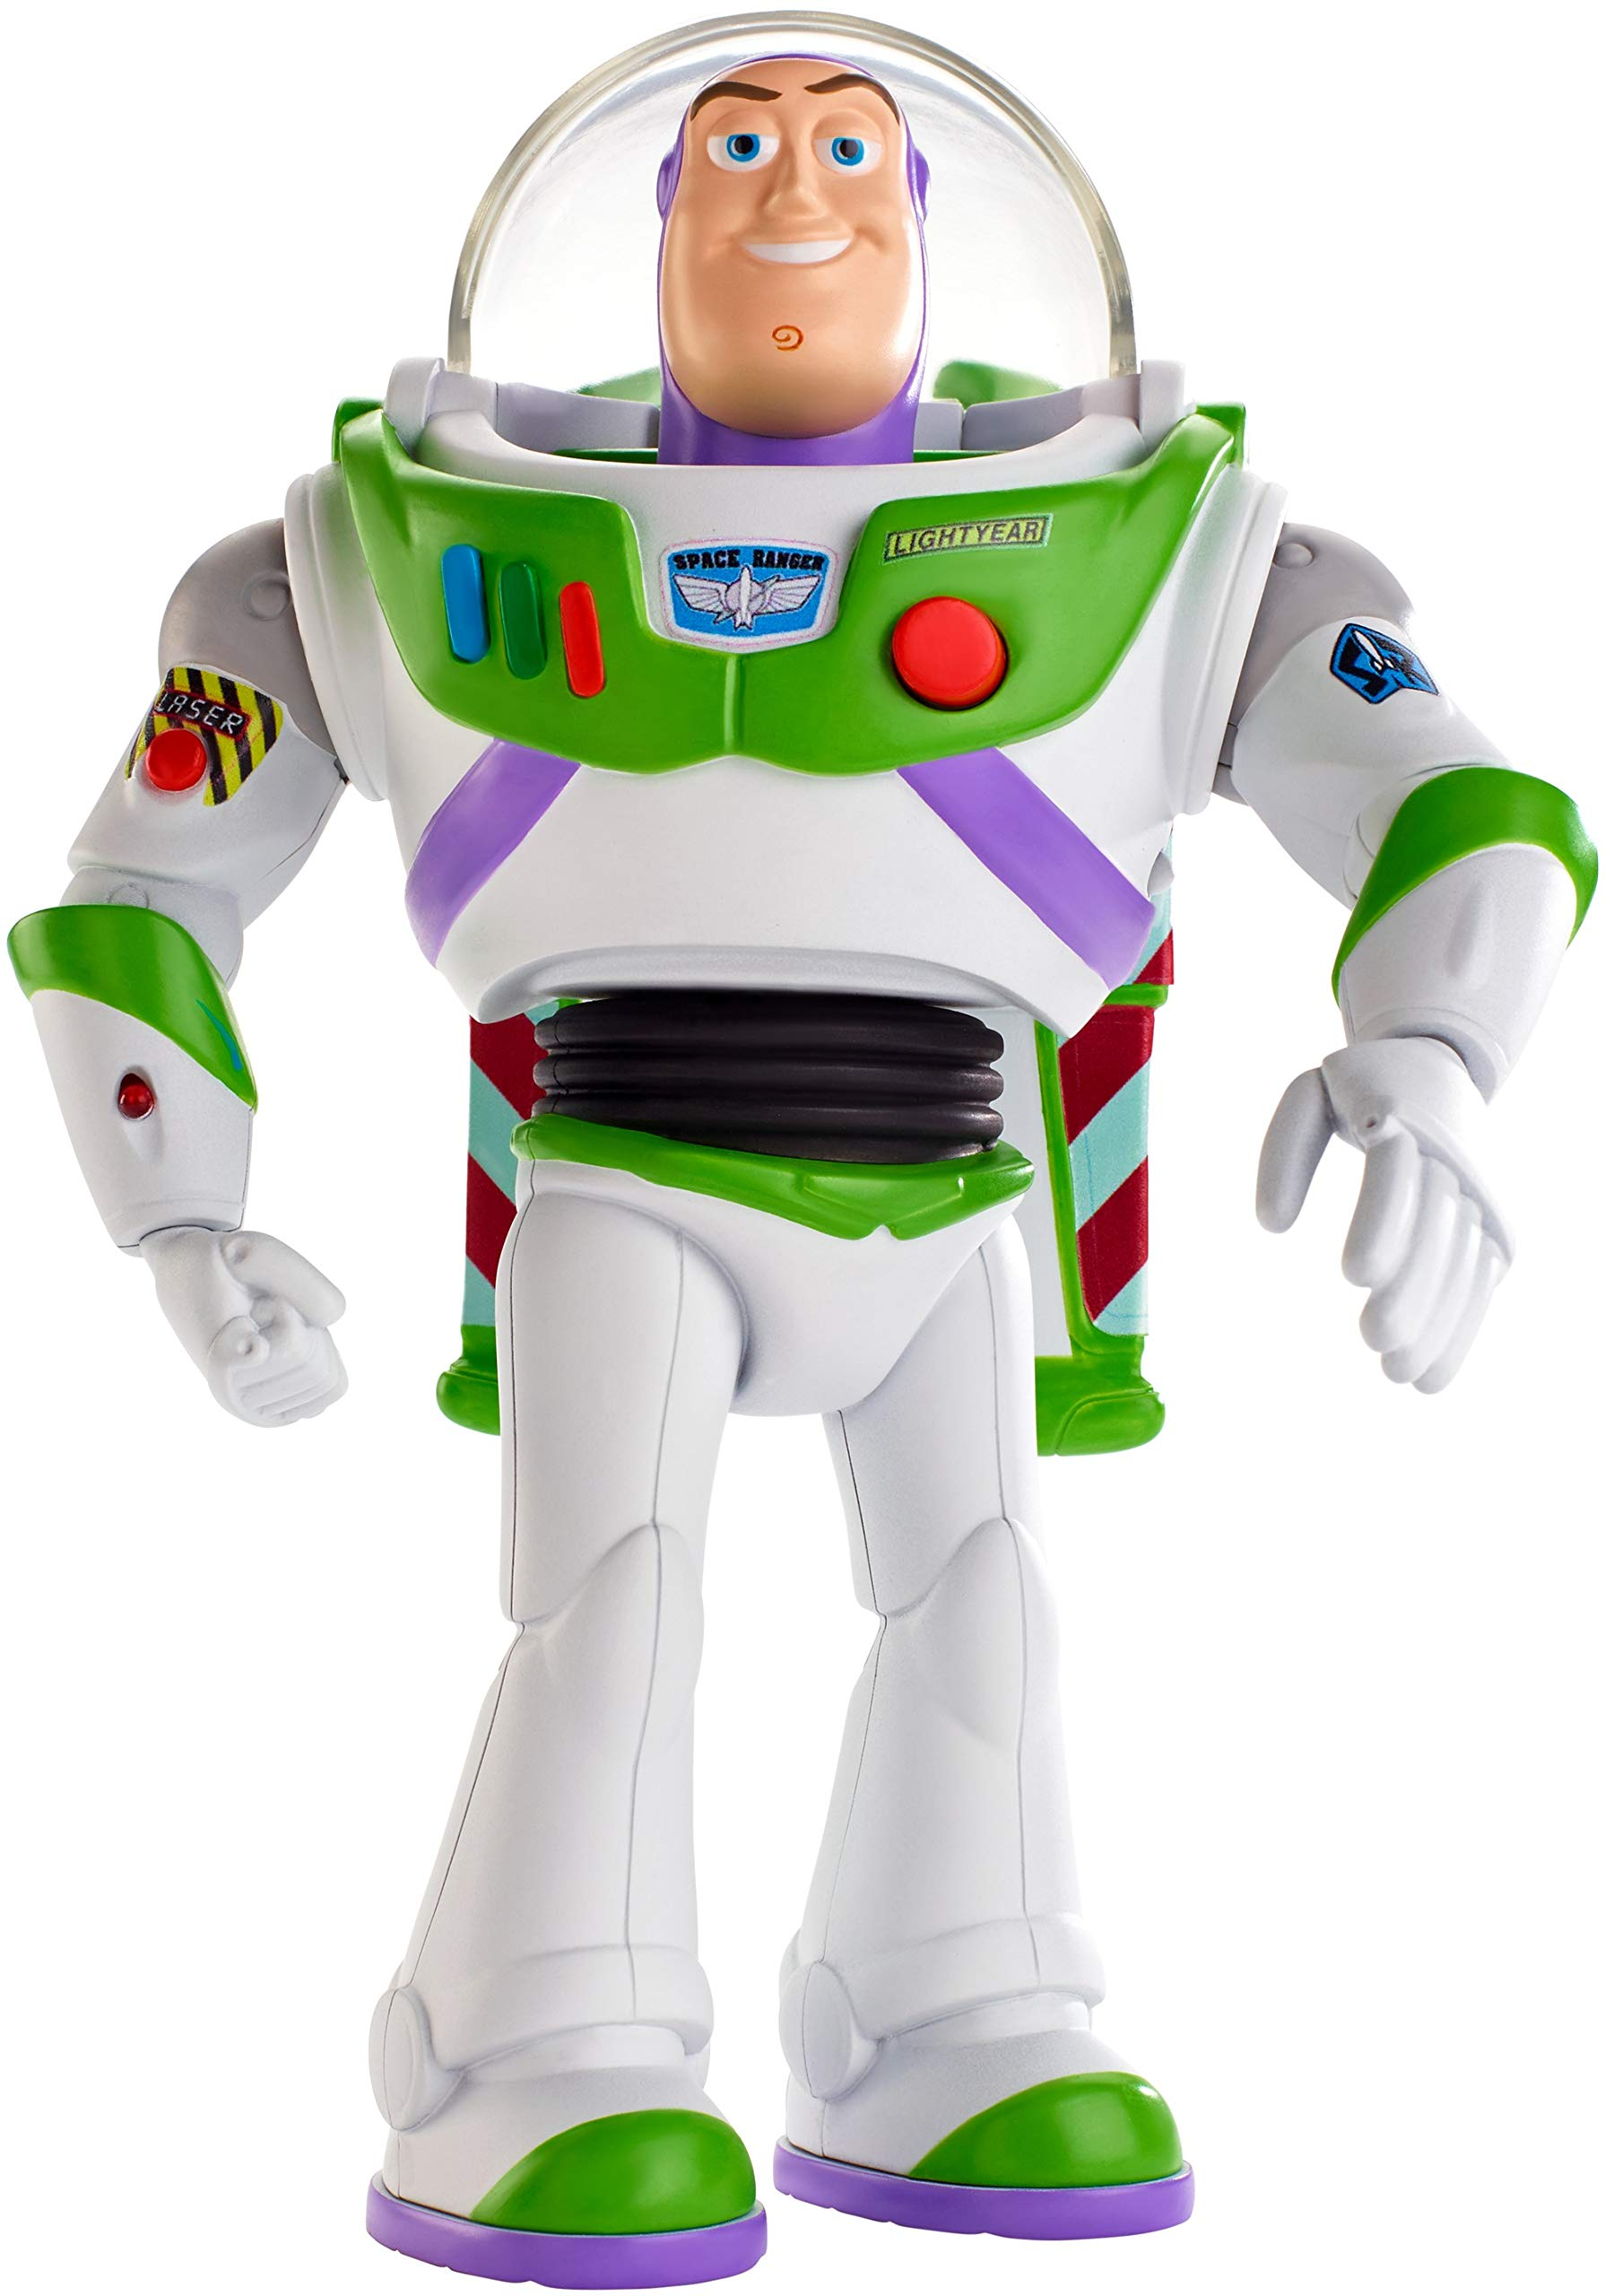 Disney Pixar Toy Story Ultimate Walking Buzz Lightyear, 7'' by Toy Story (Image #7)